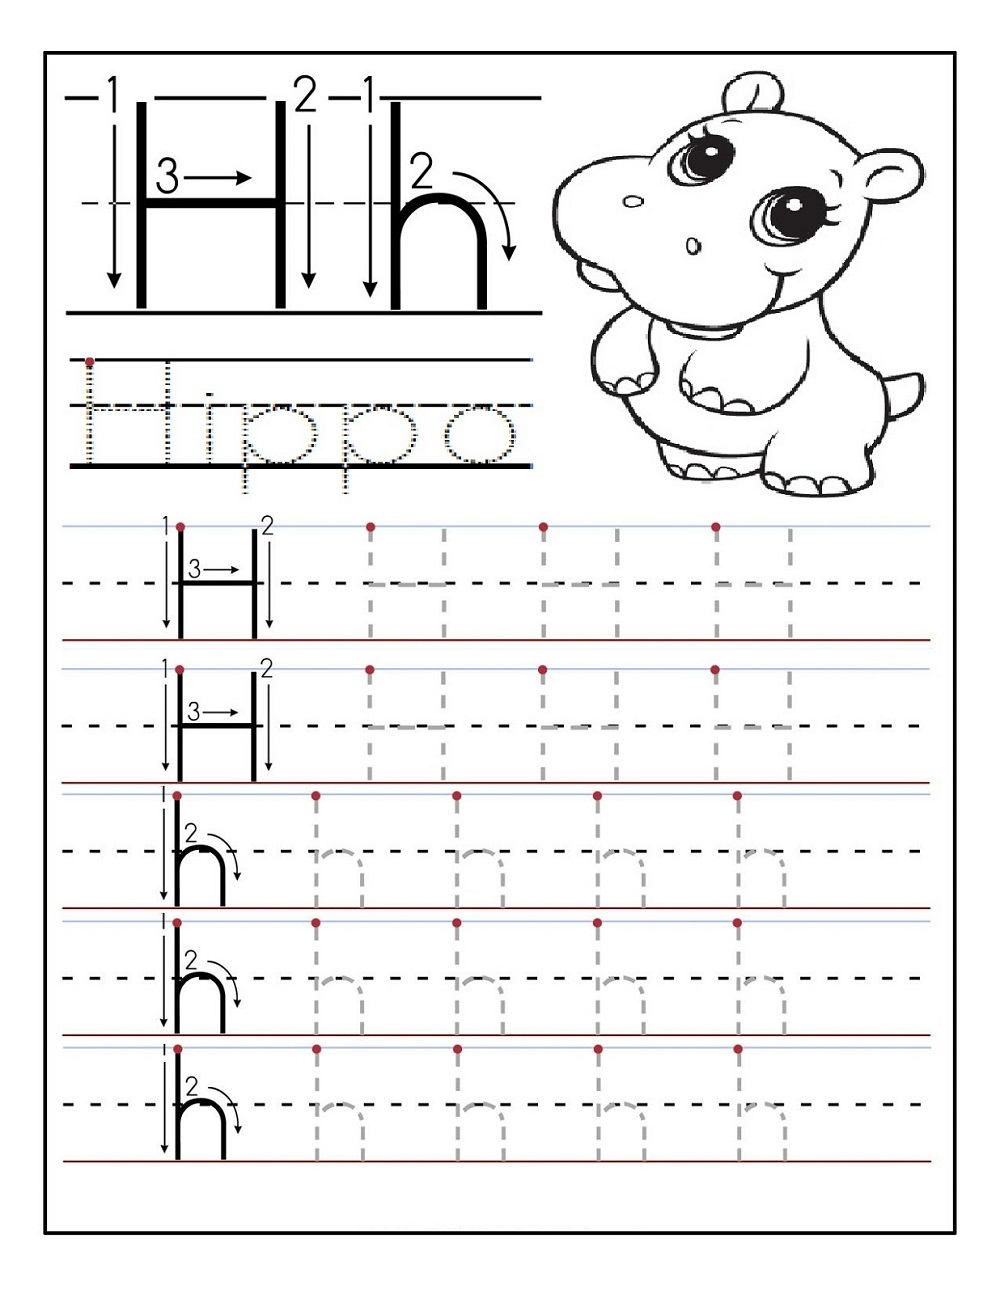 tracing worksheets 3 year old free